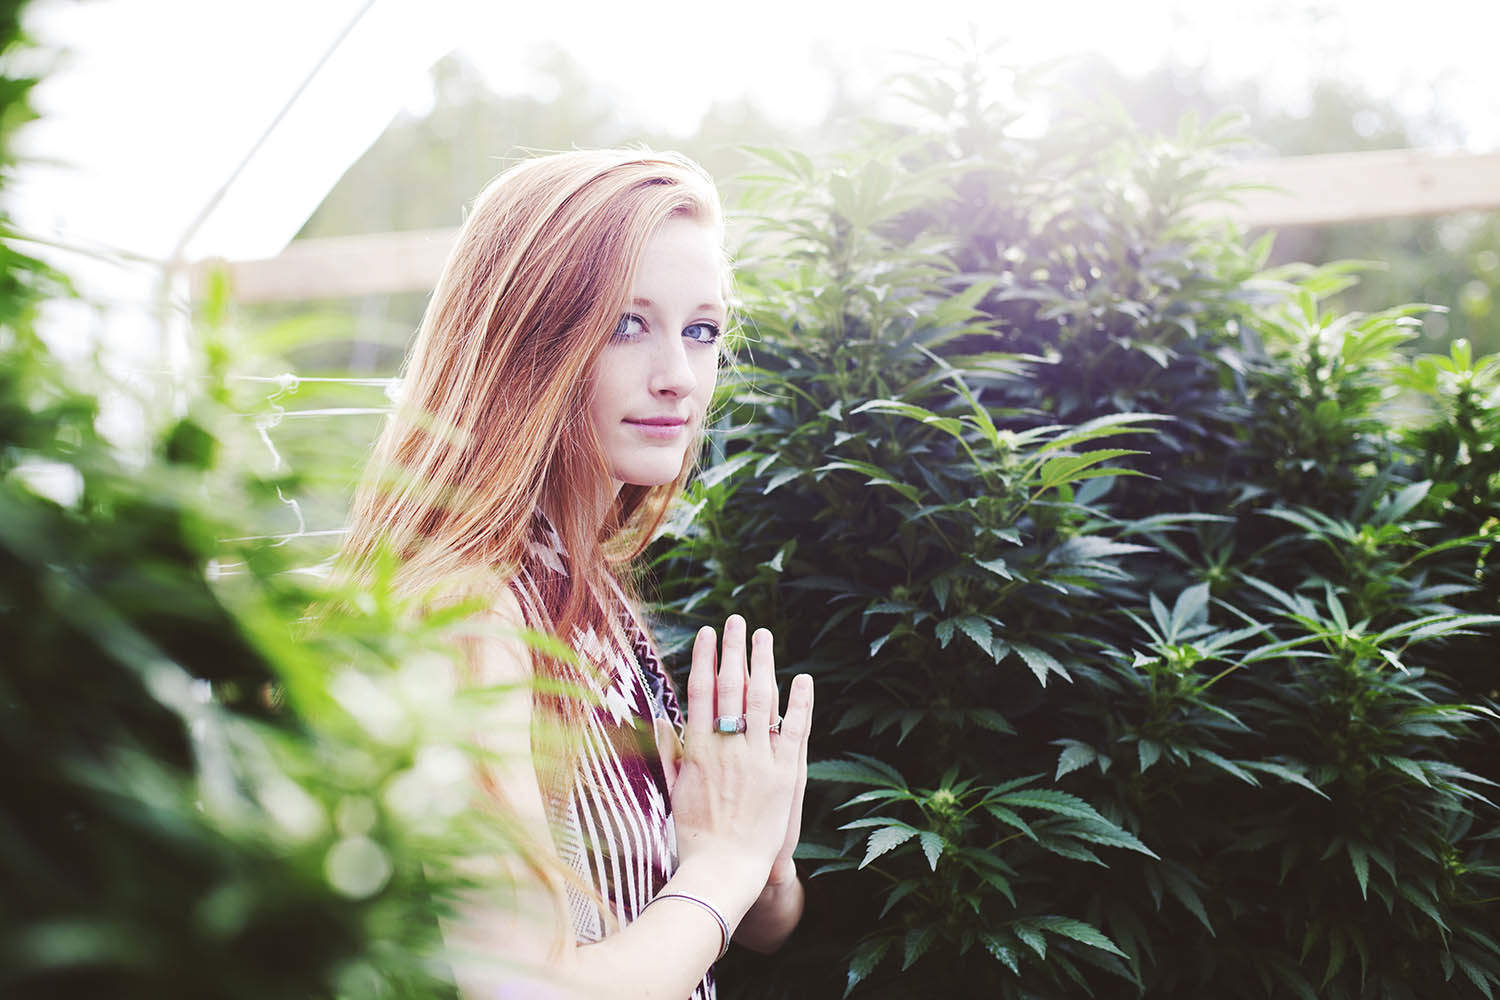 Weed Pray Love - How Cannabis Use Has Shaped Our World